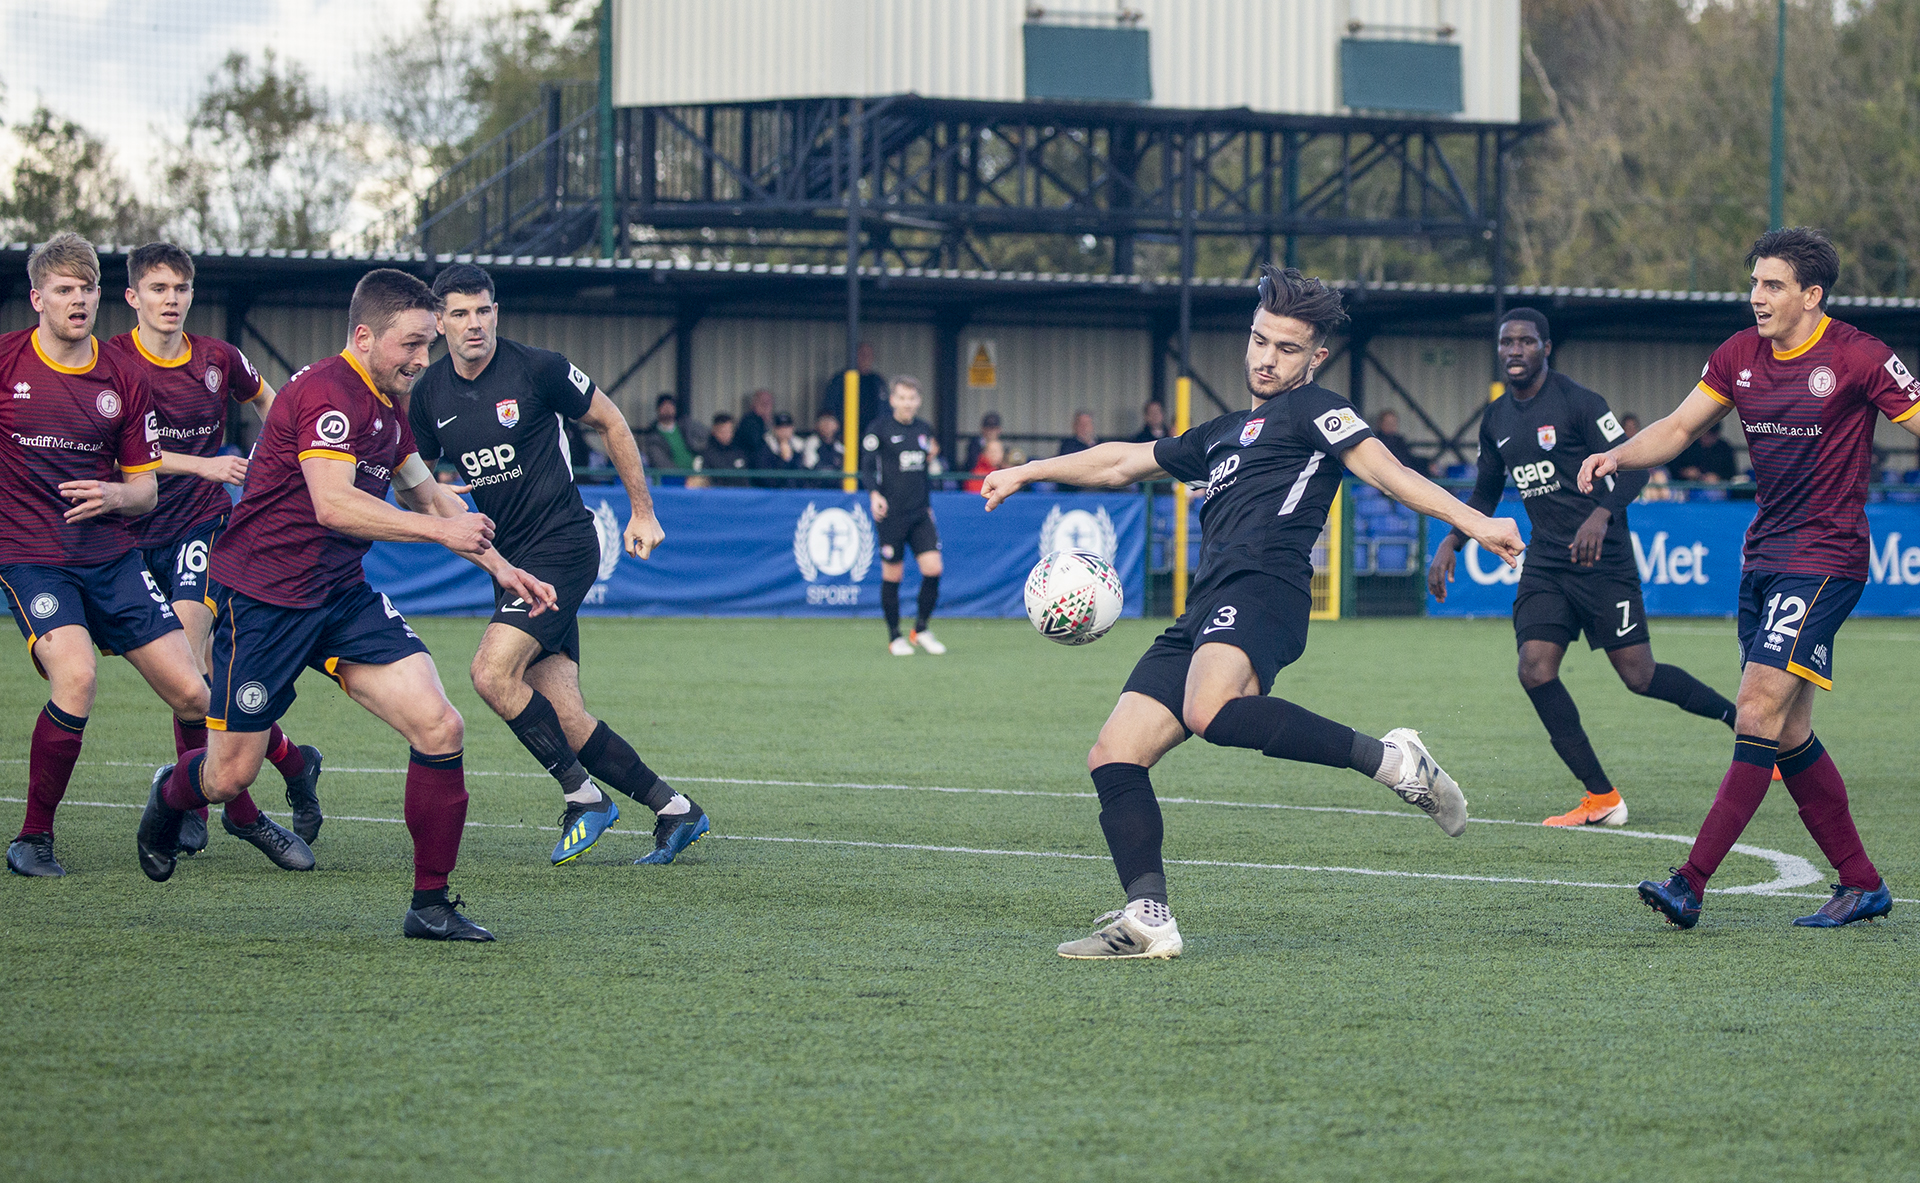 Callum Roberts shoots for goal in the first half | © NCM Media